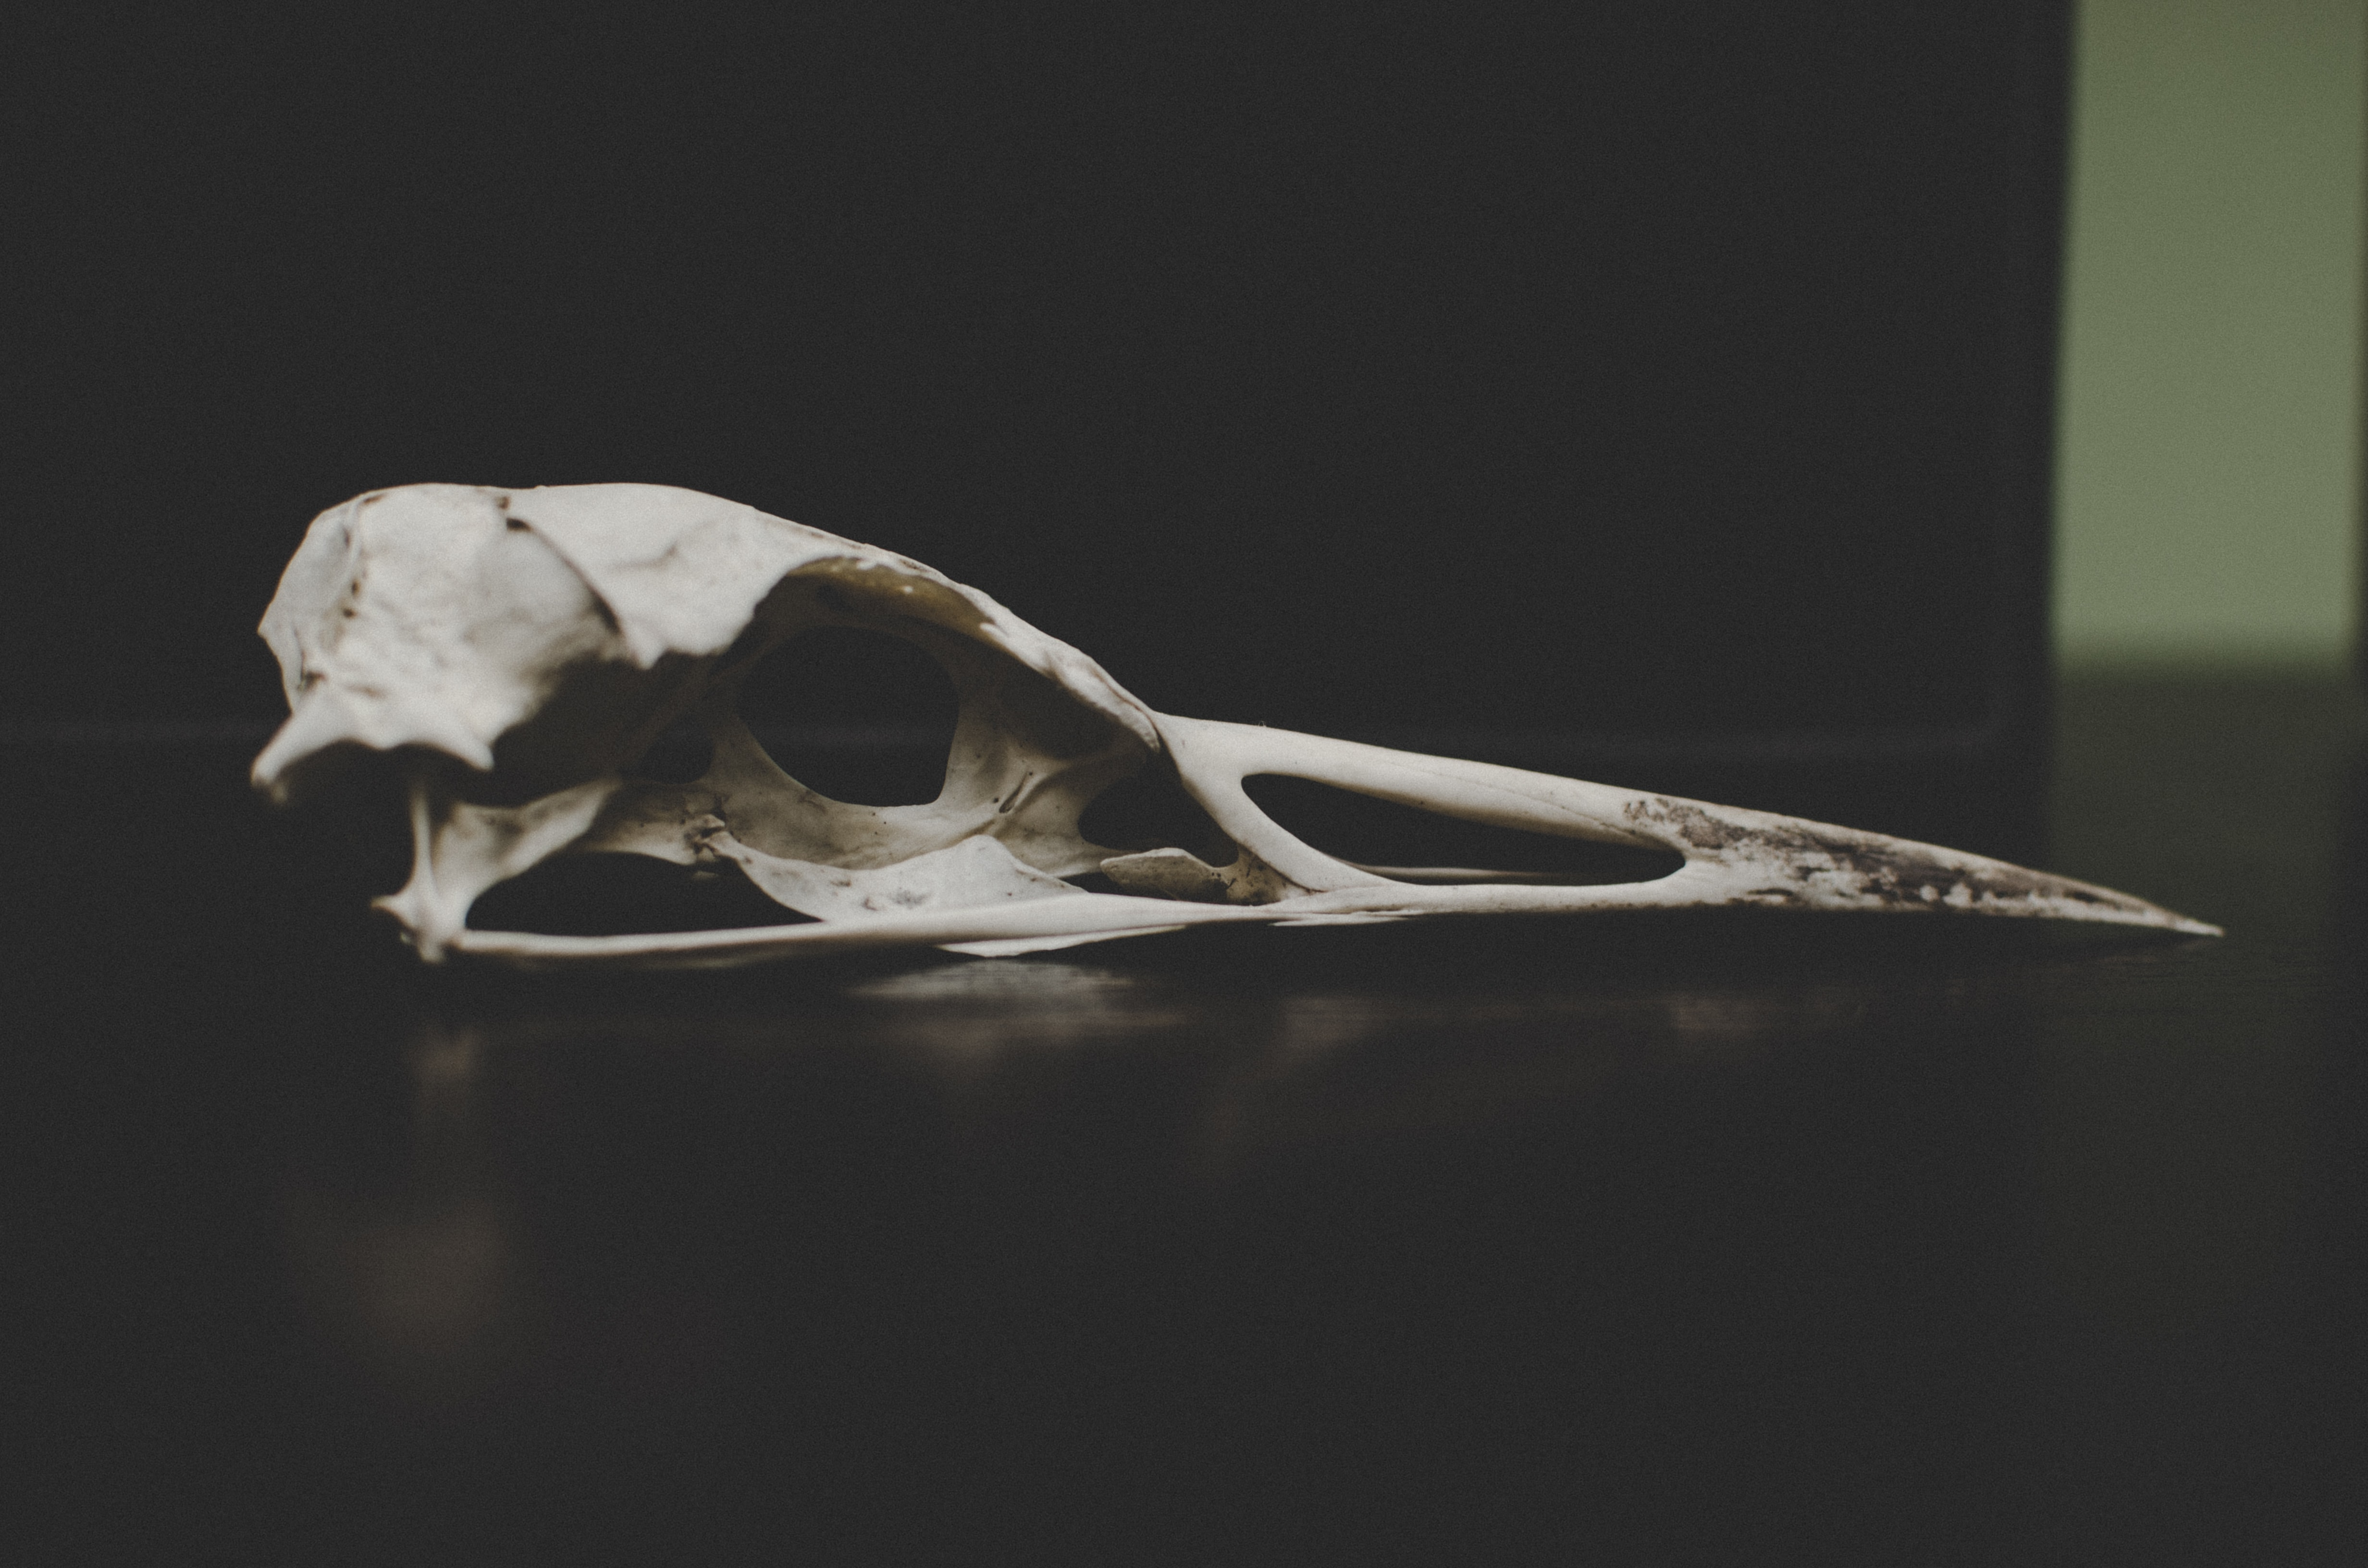 The skull of a bird with long beak in the Isle of Wight